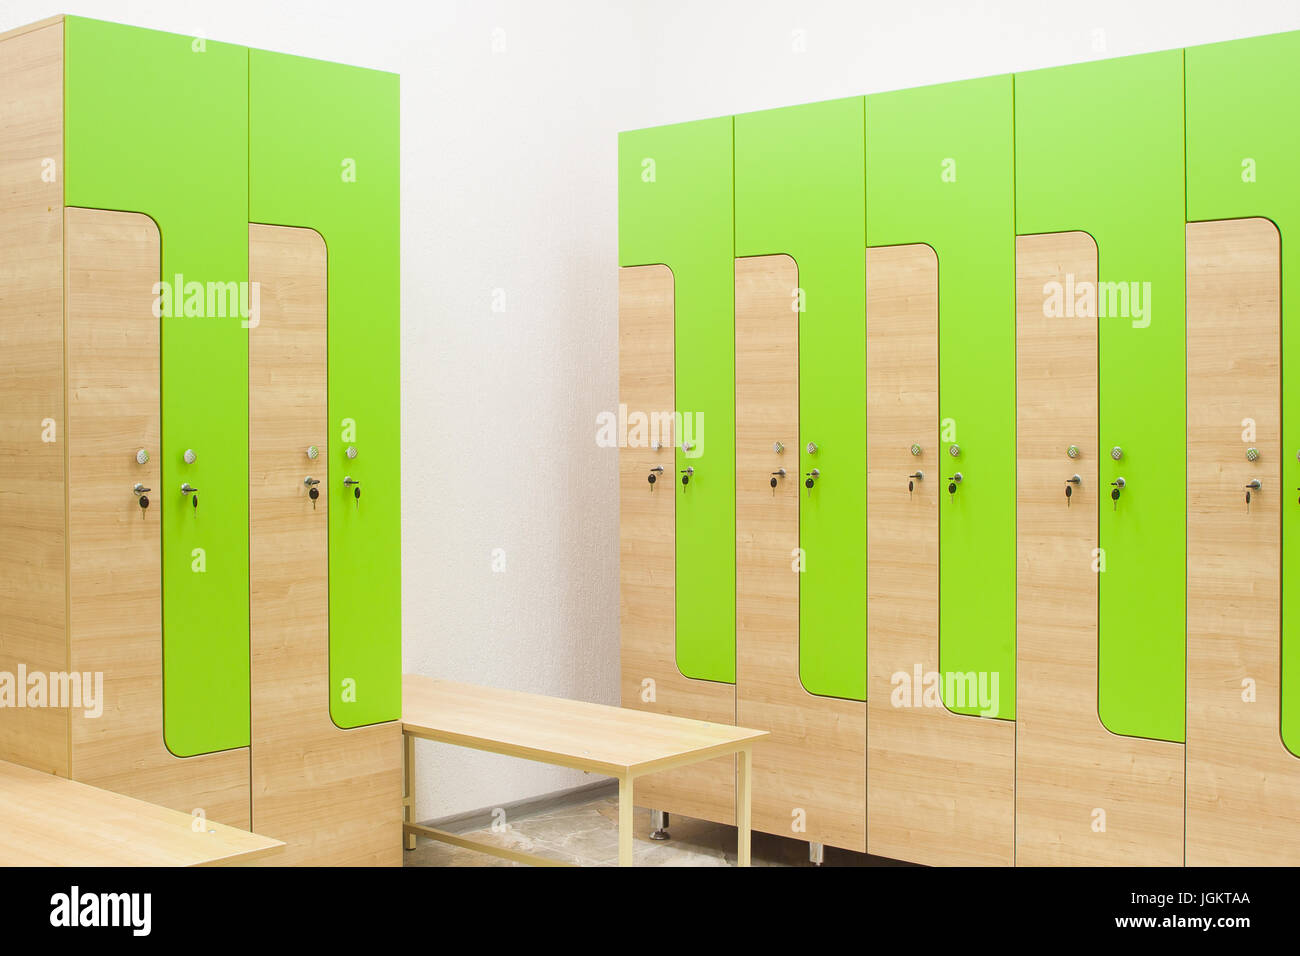 Outstanding Green And Wooden Sports Wardrobe In The Gym For Clothes And Beatyapartments Chair Design Images Beatyapartmentscom